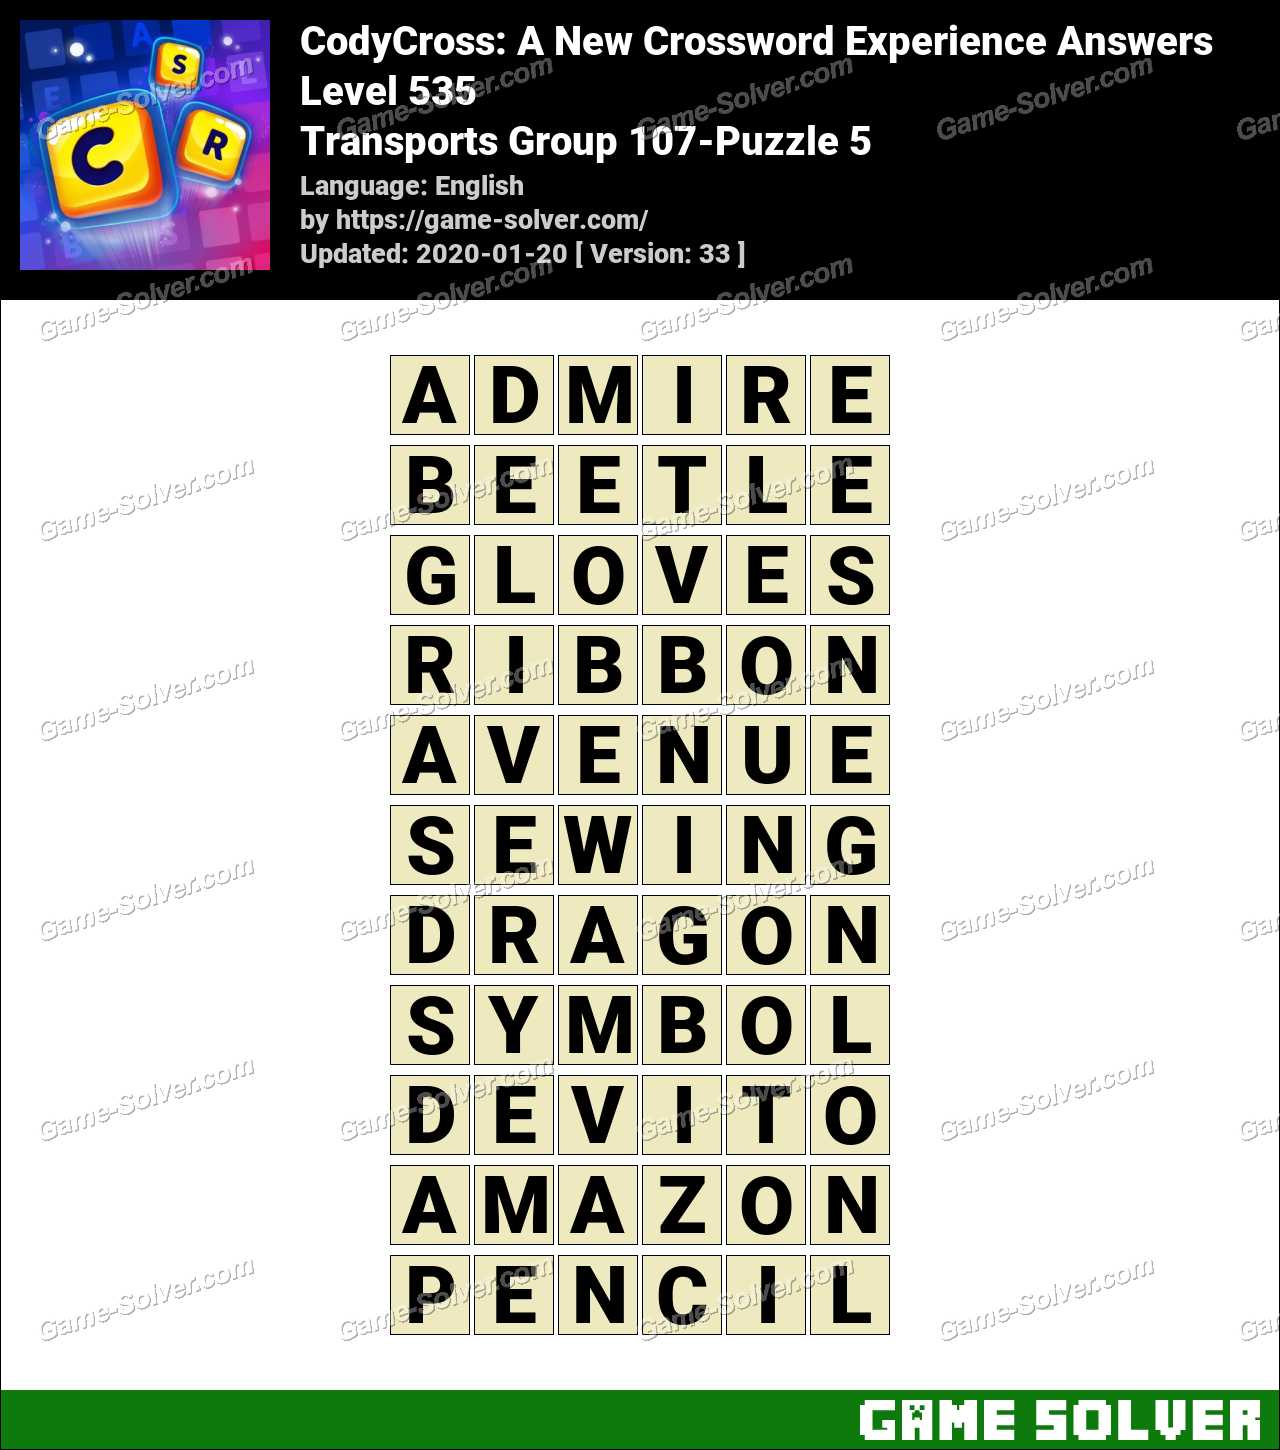 CodyCross Transports Group 107-Puzzle 5 Answers